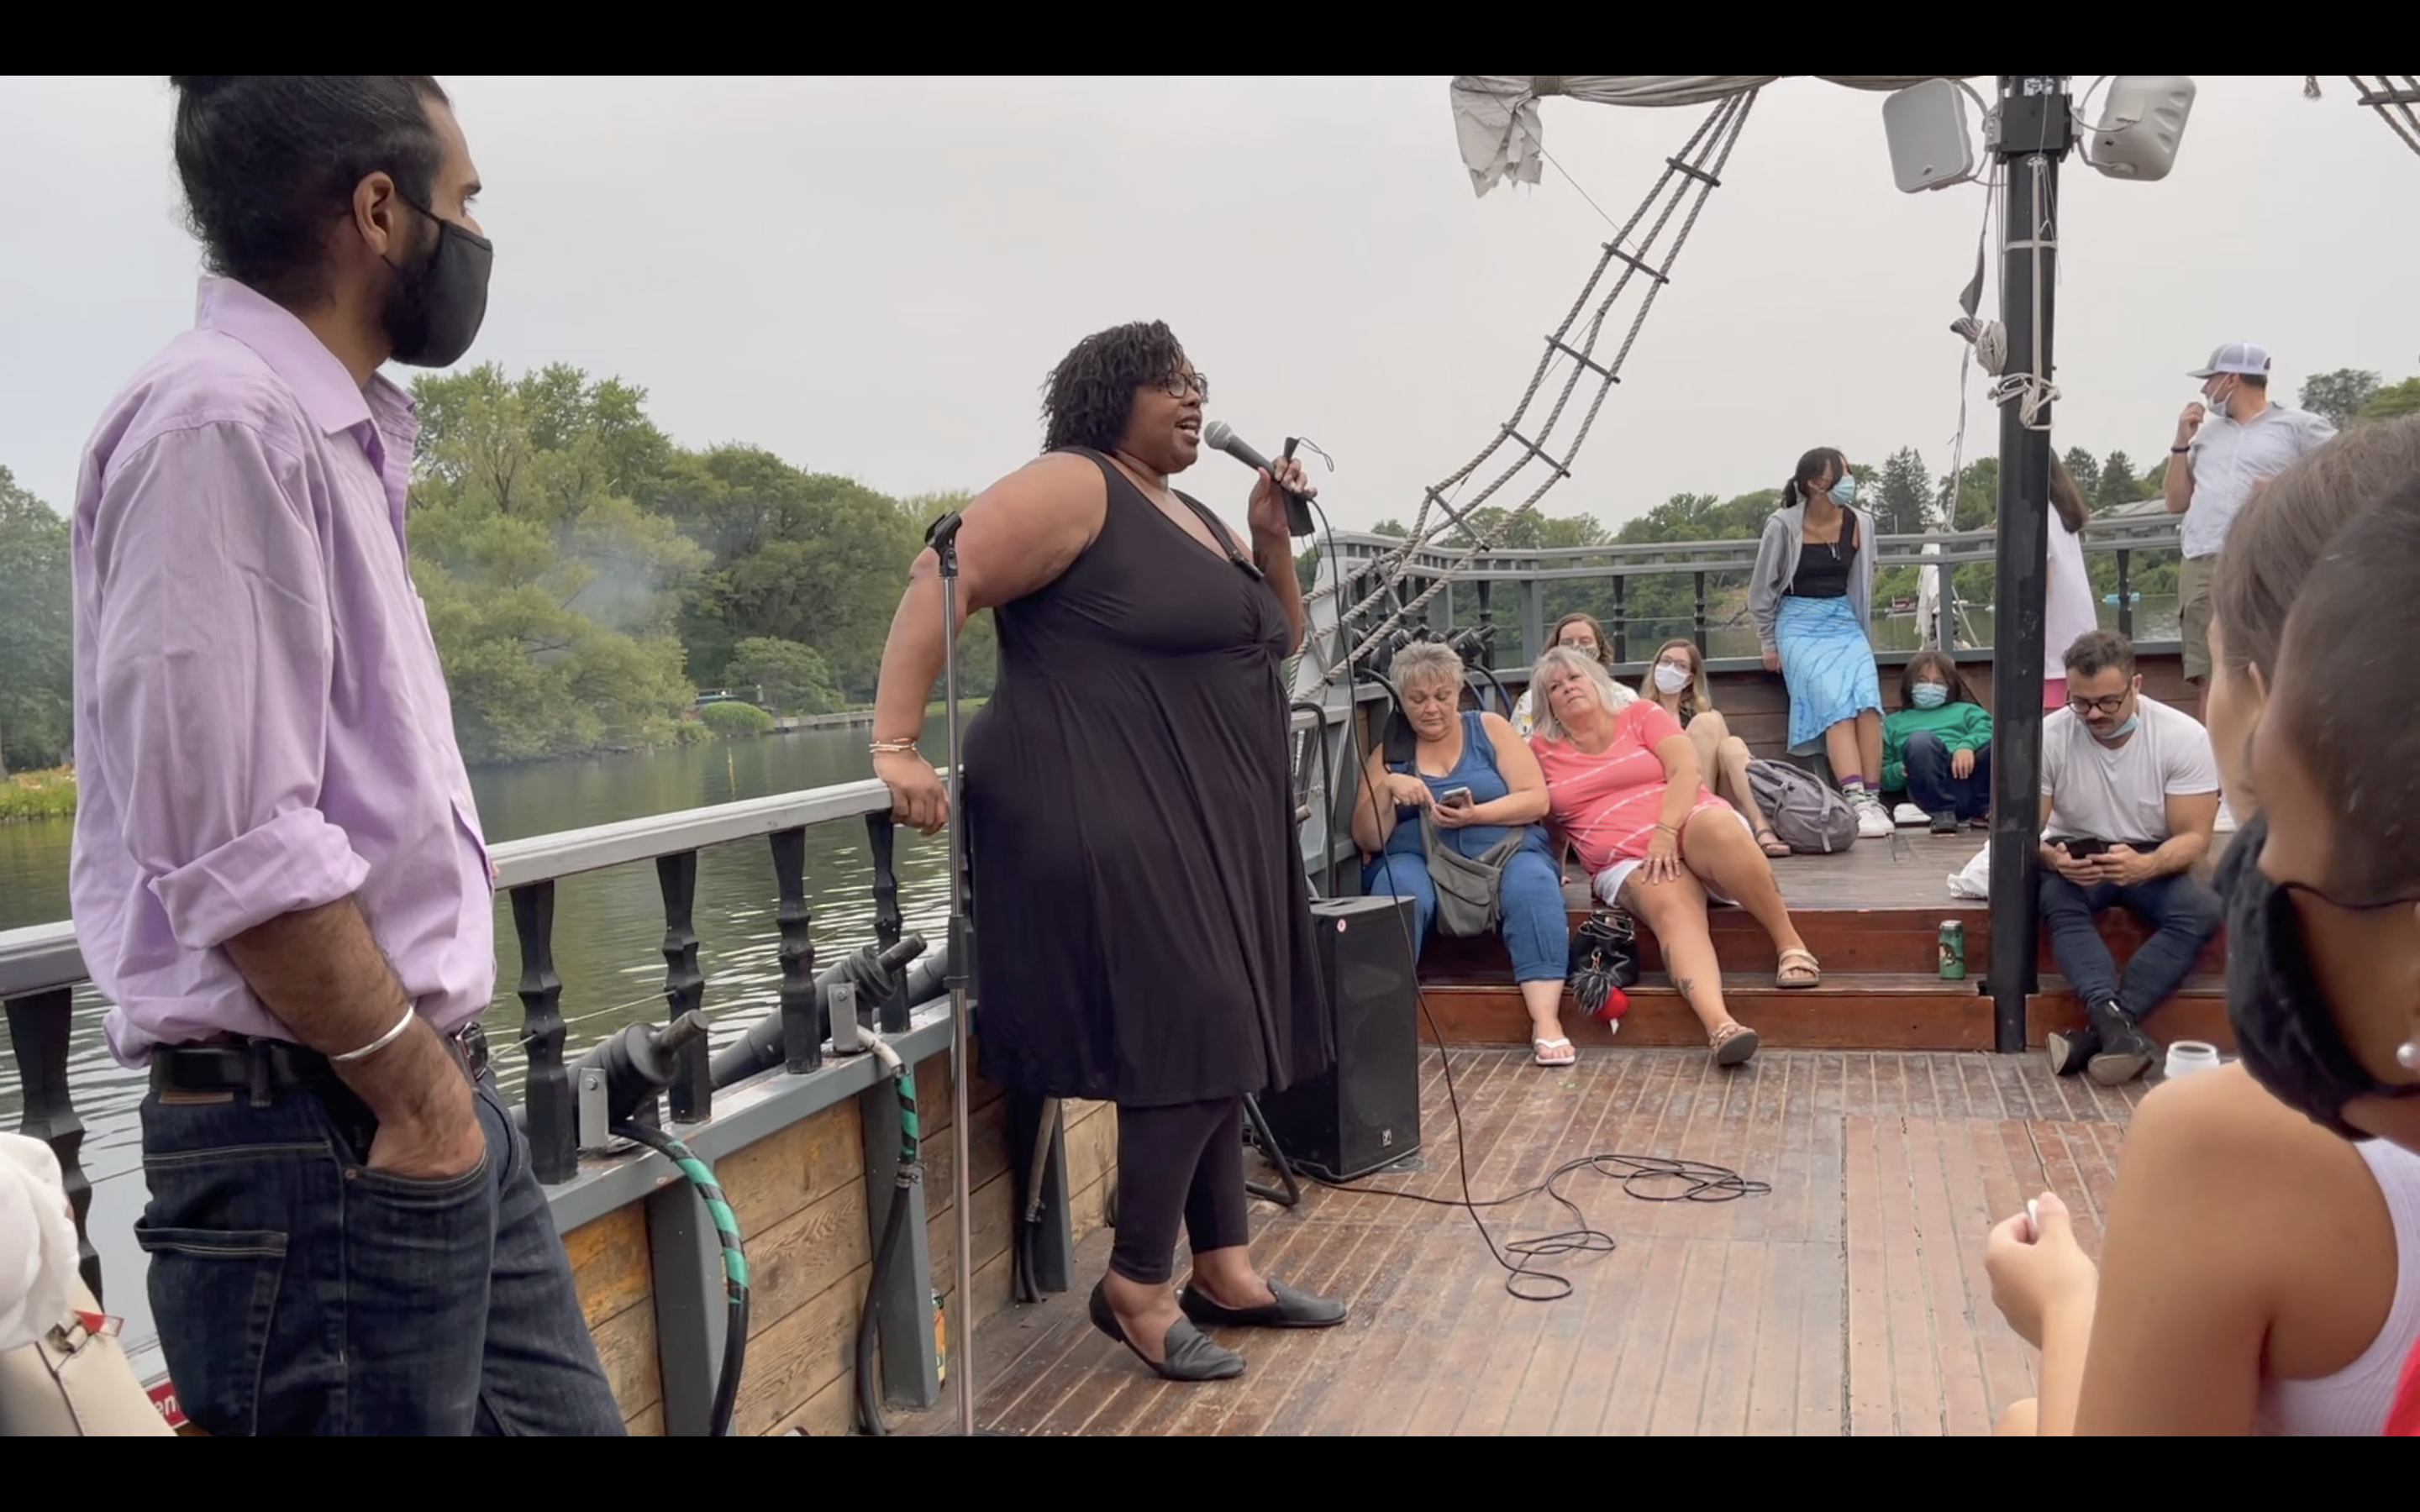 Laughs Ahoy! The Pirate Ship Comedy Hour - July 17, 2021